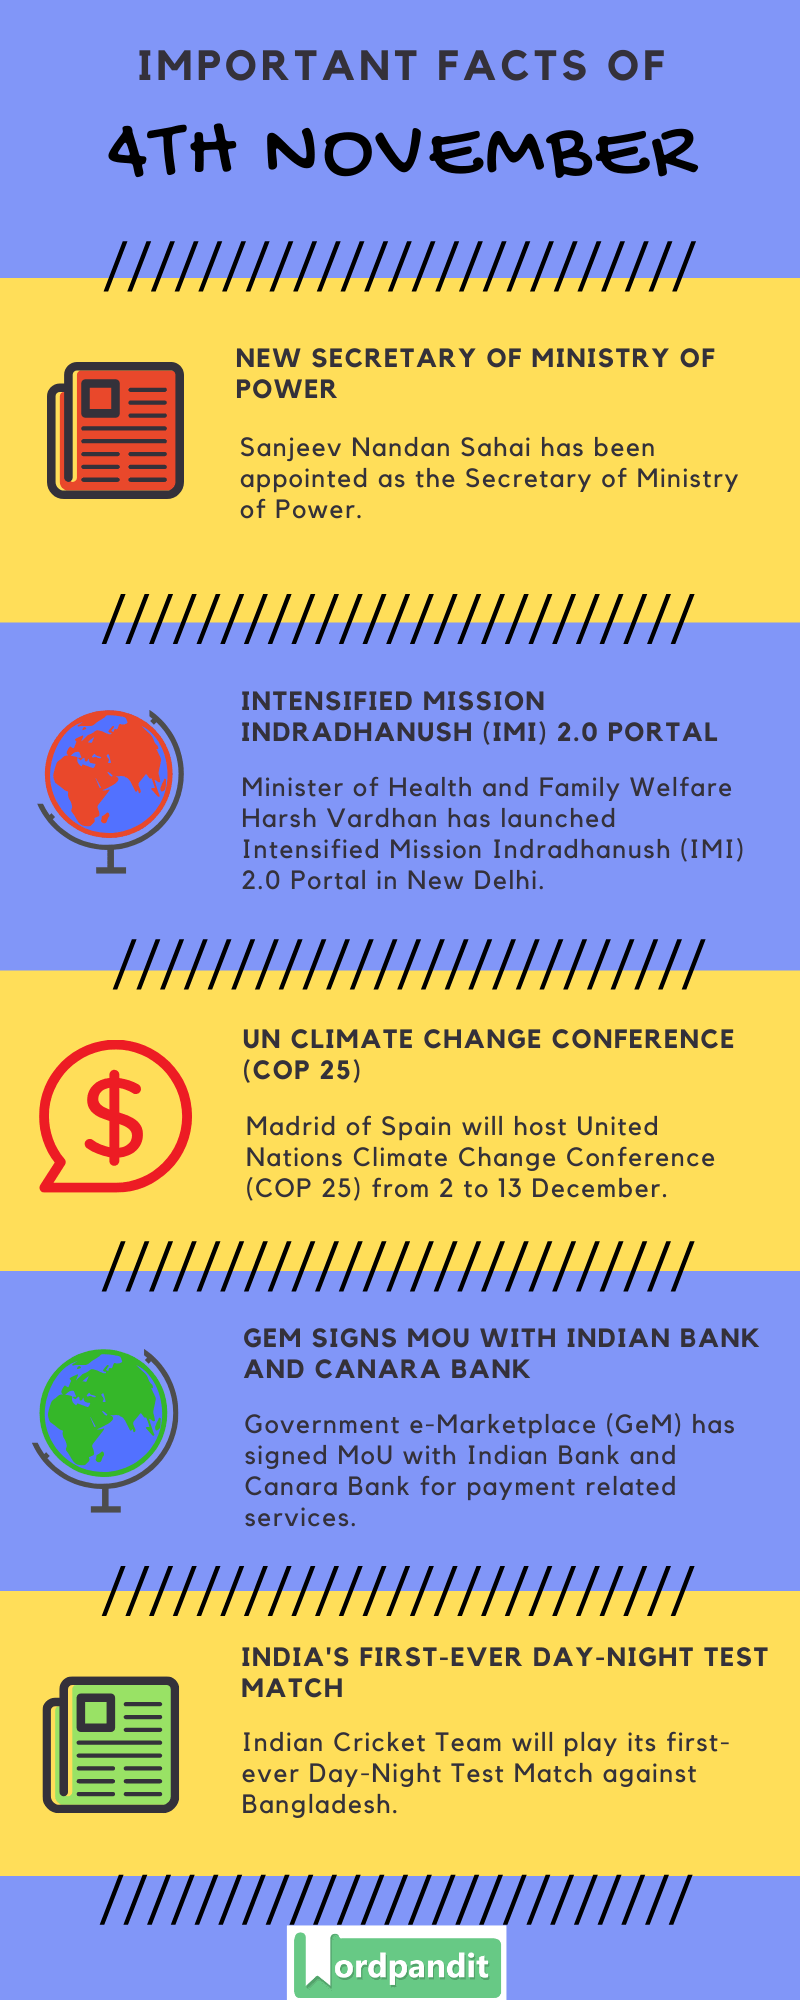 Daily Current Affairs 4 November 2019 Current Affairs Quiz 4 November 2019 Current Affairs Infographic